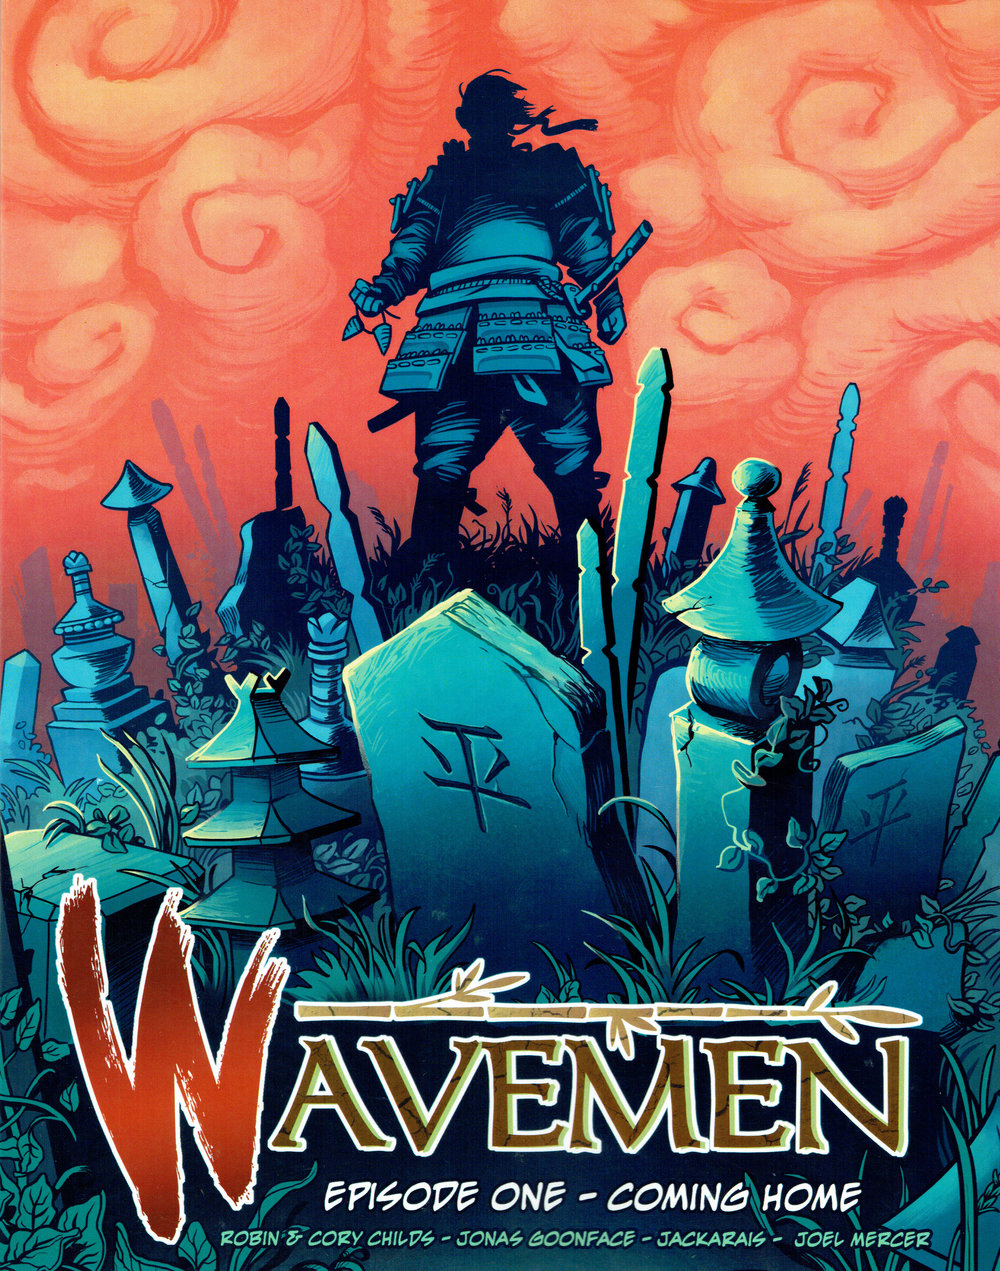 Wavemen vol.1 from Moko Press.